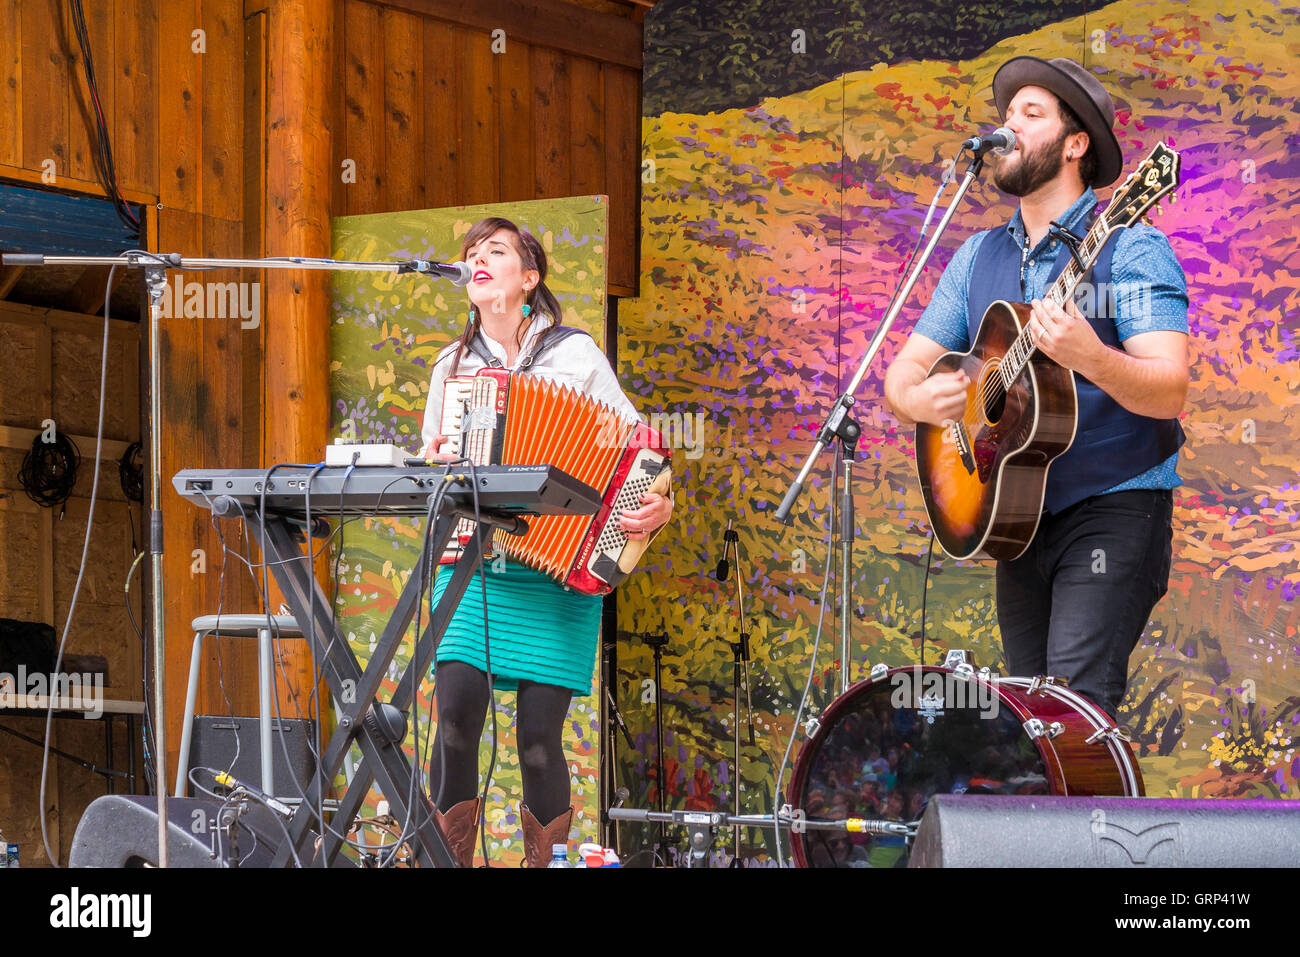 Newfoundland duo the Fortunate Ones perform at Canmore Folk Music Festival, Canmore, Alberta, Canada - Stock Image